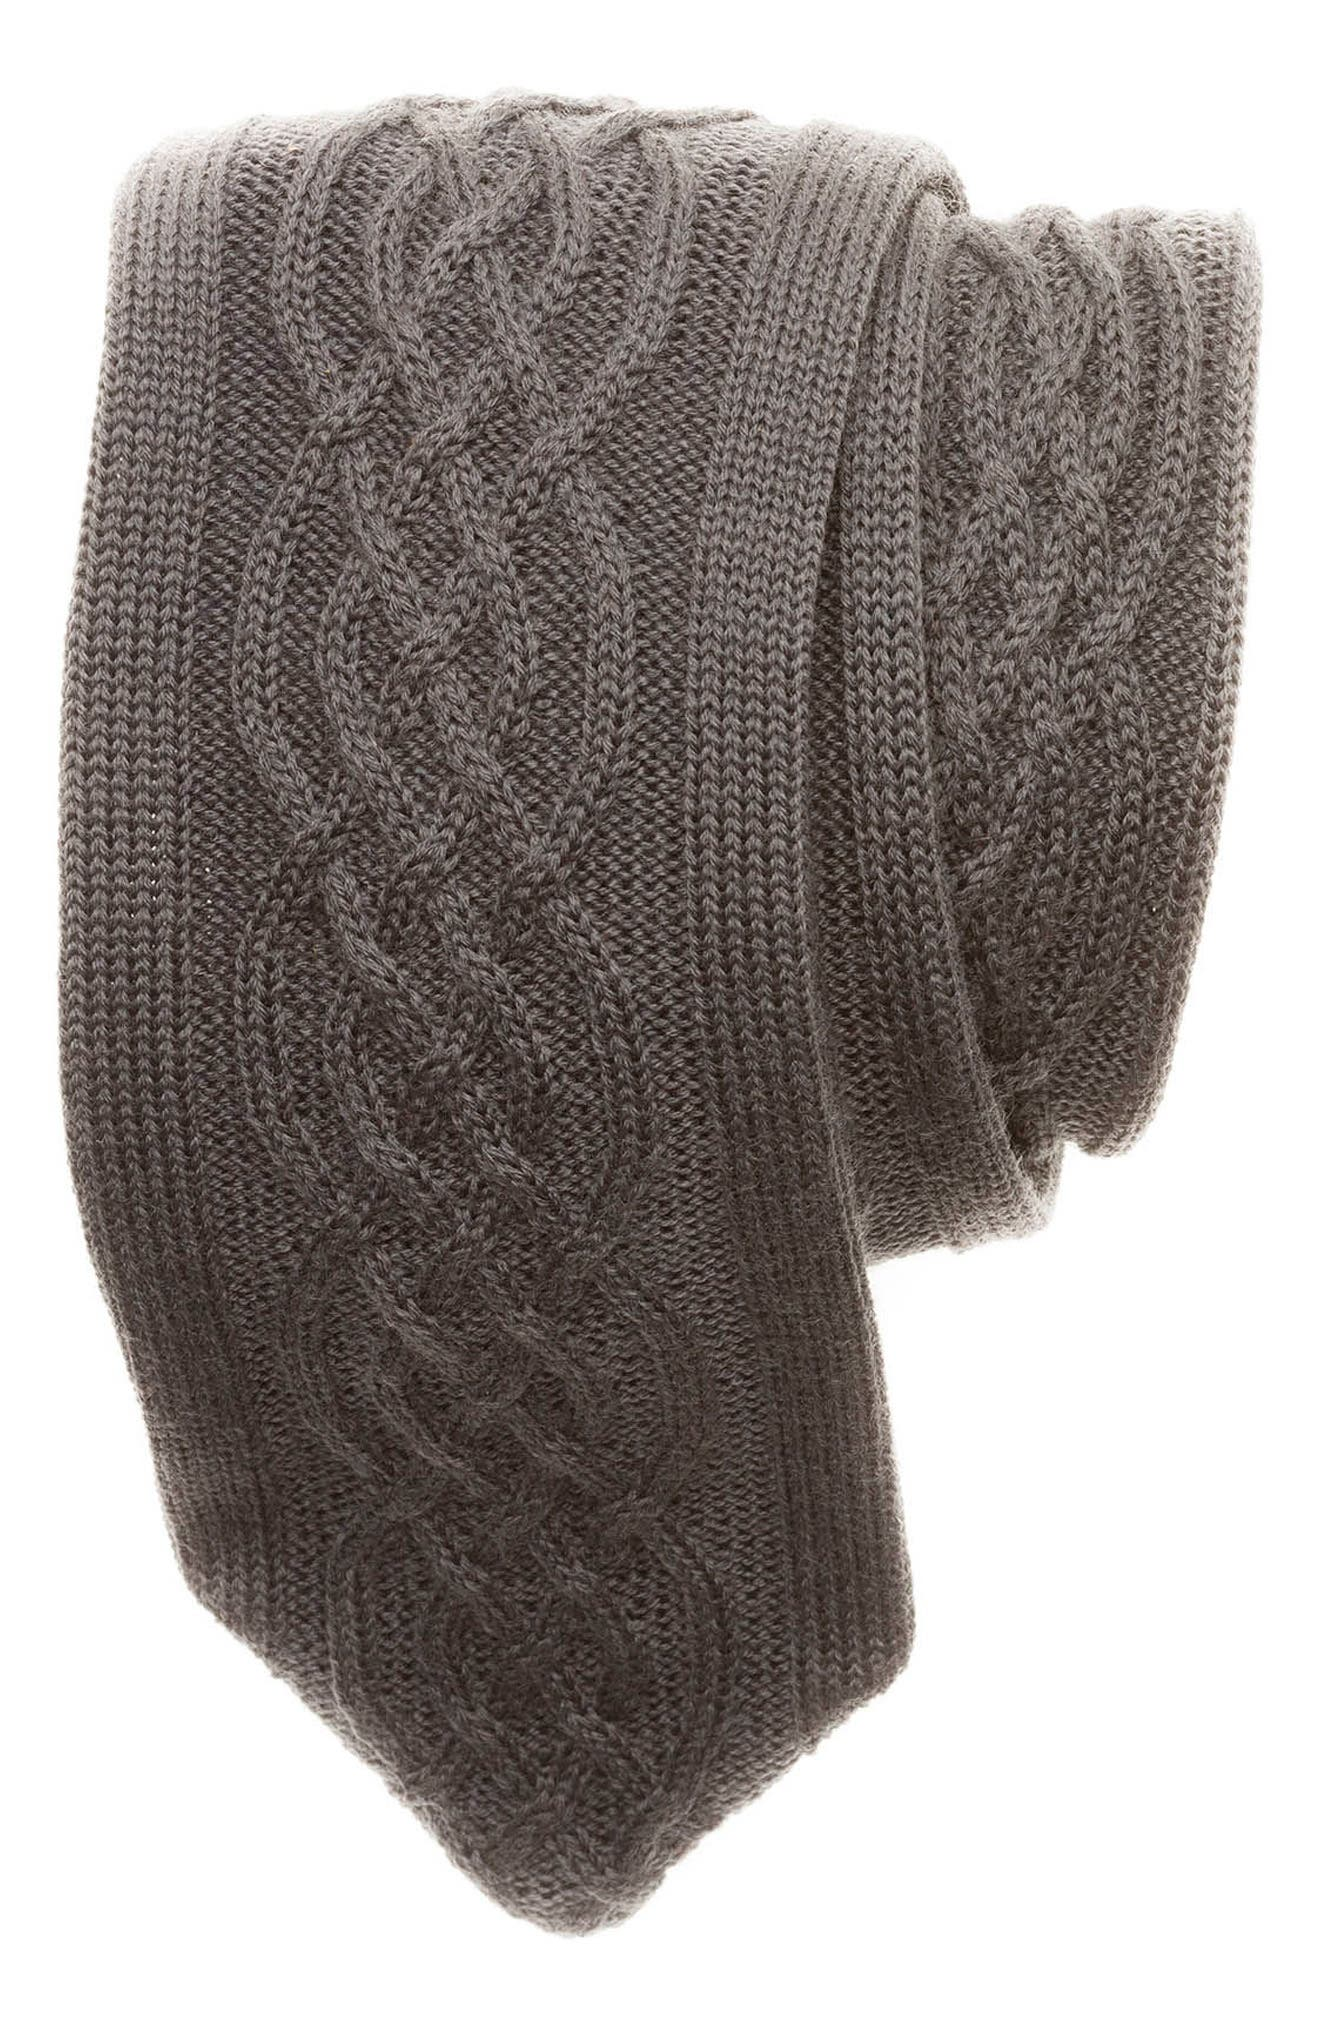 hook + ALBERT Cable Knit Wool Tie